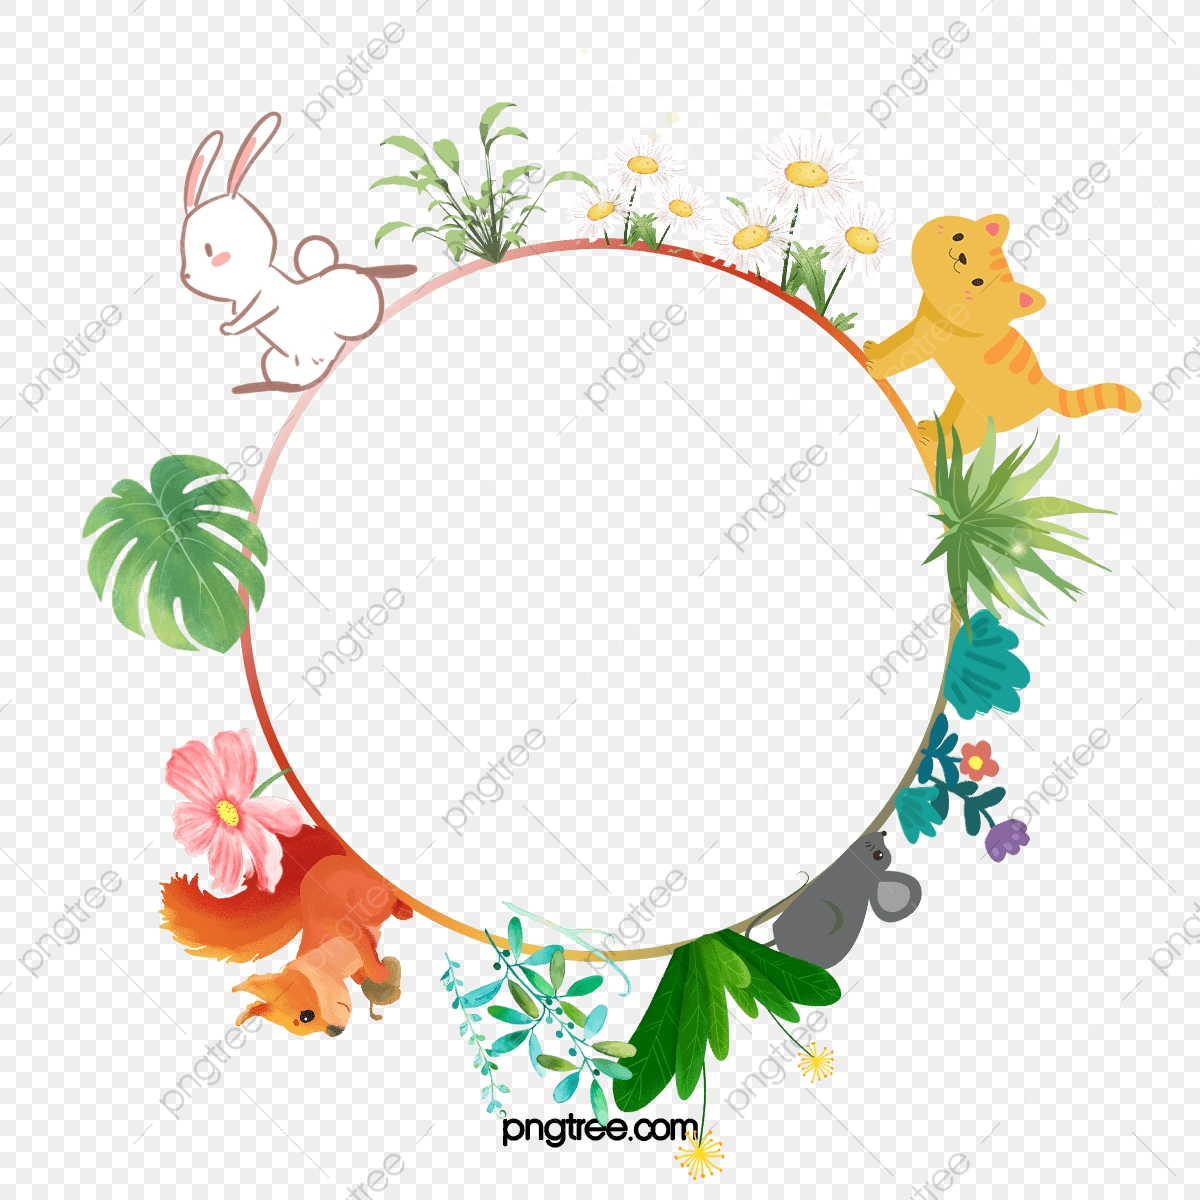 forest animal watercolor round background animal clipart watercolor clipart background clipart png transparent clipart image and psd file for free download https pngtree com freepng forest animal watercolor round background 3230205 html